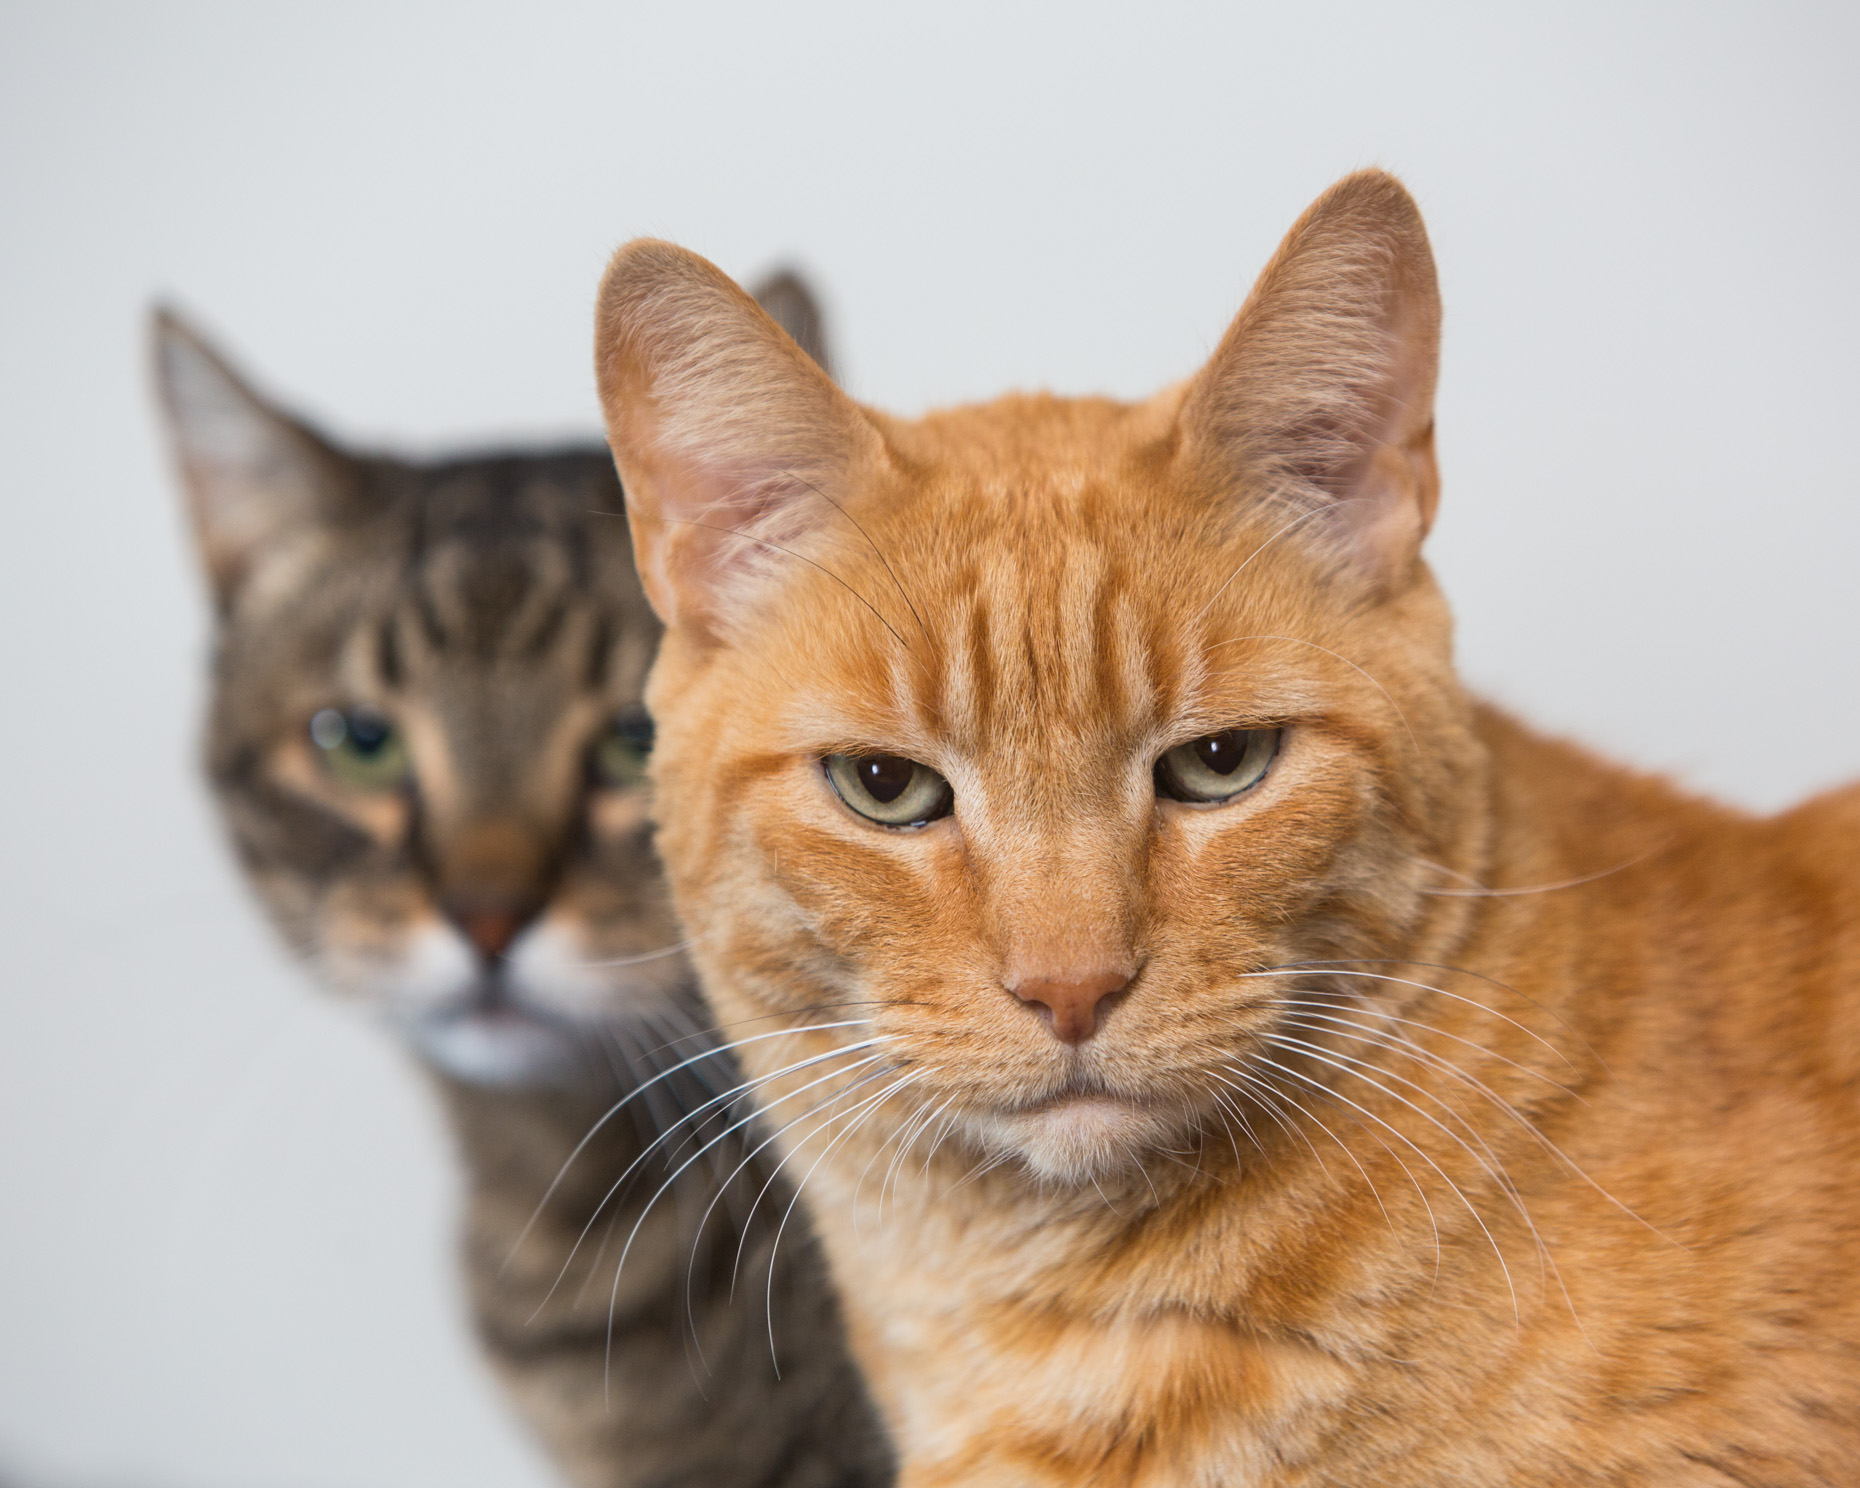 Cat Studio Photography | Close-up of Two Tabby Cats